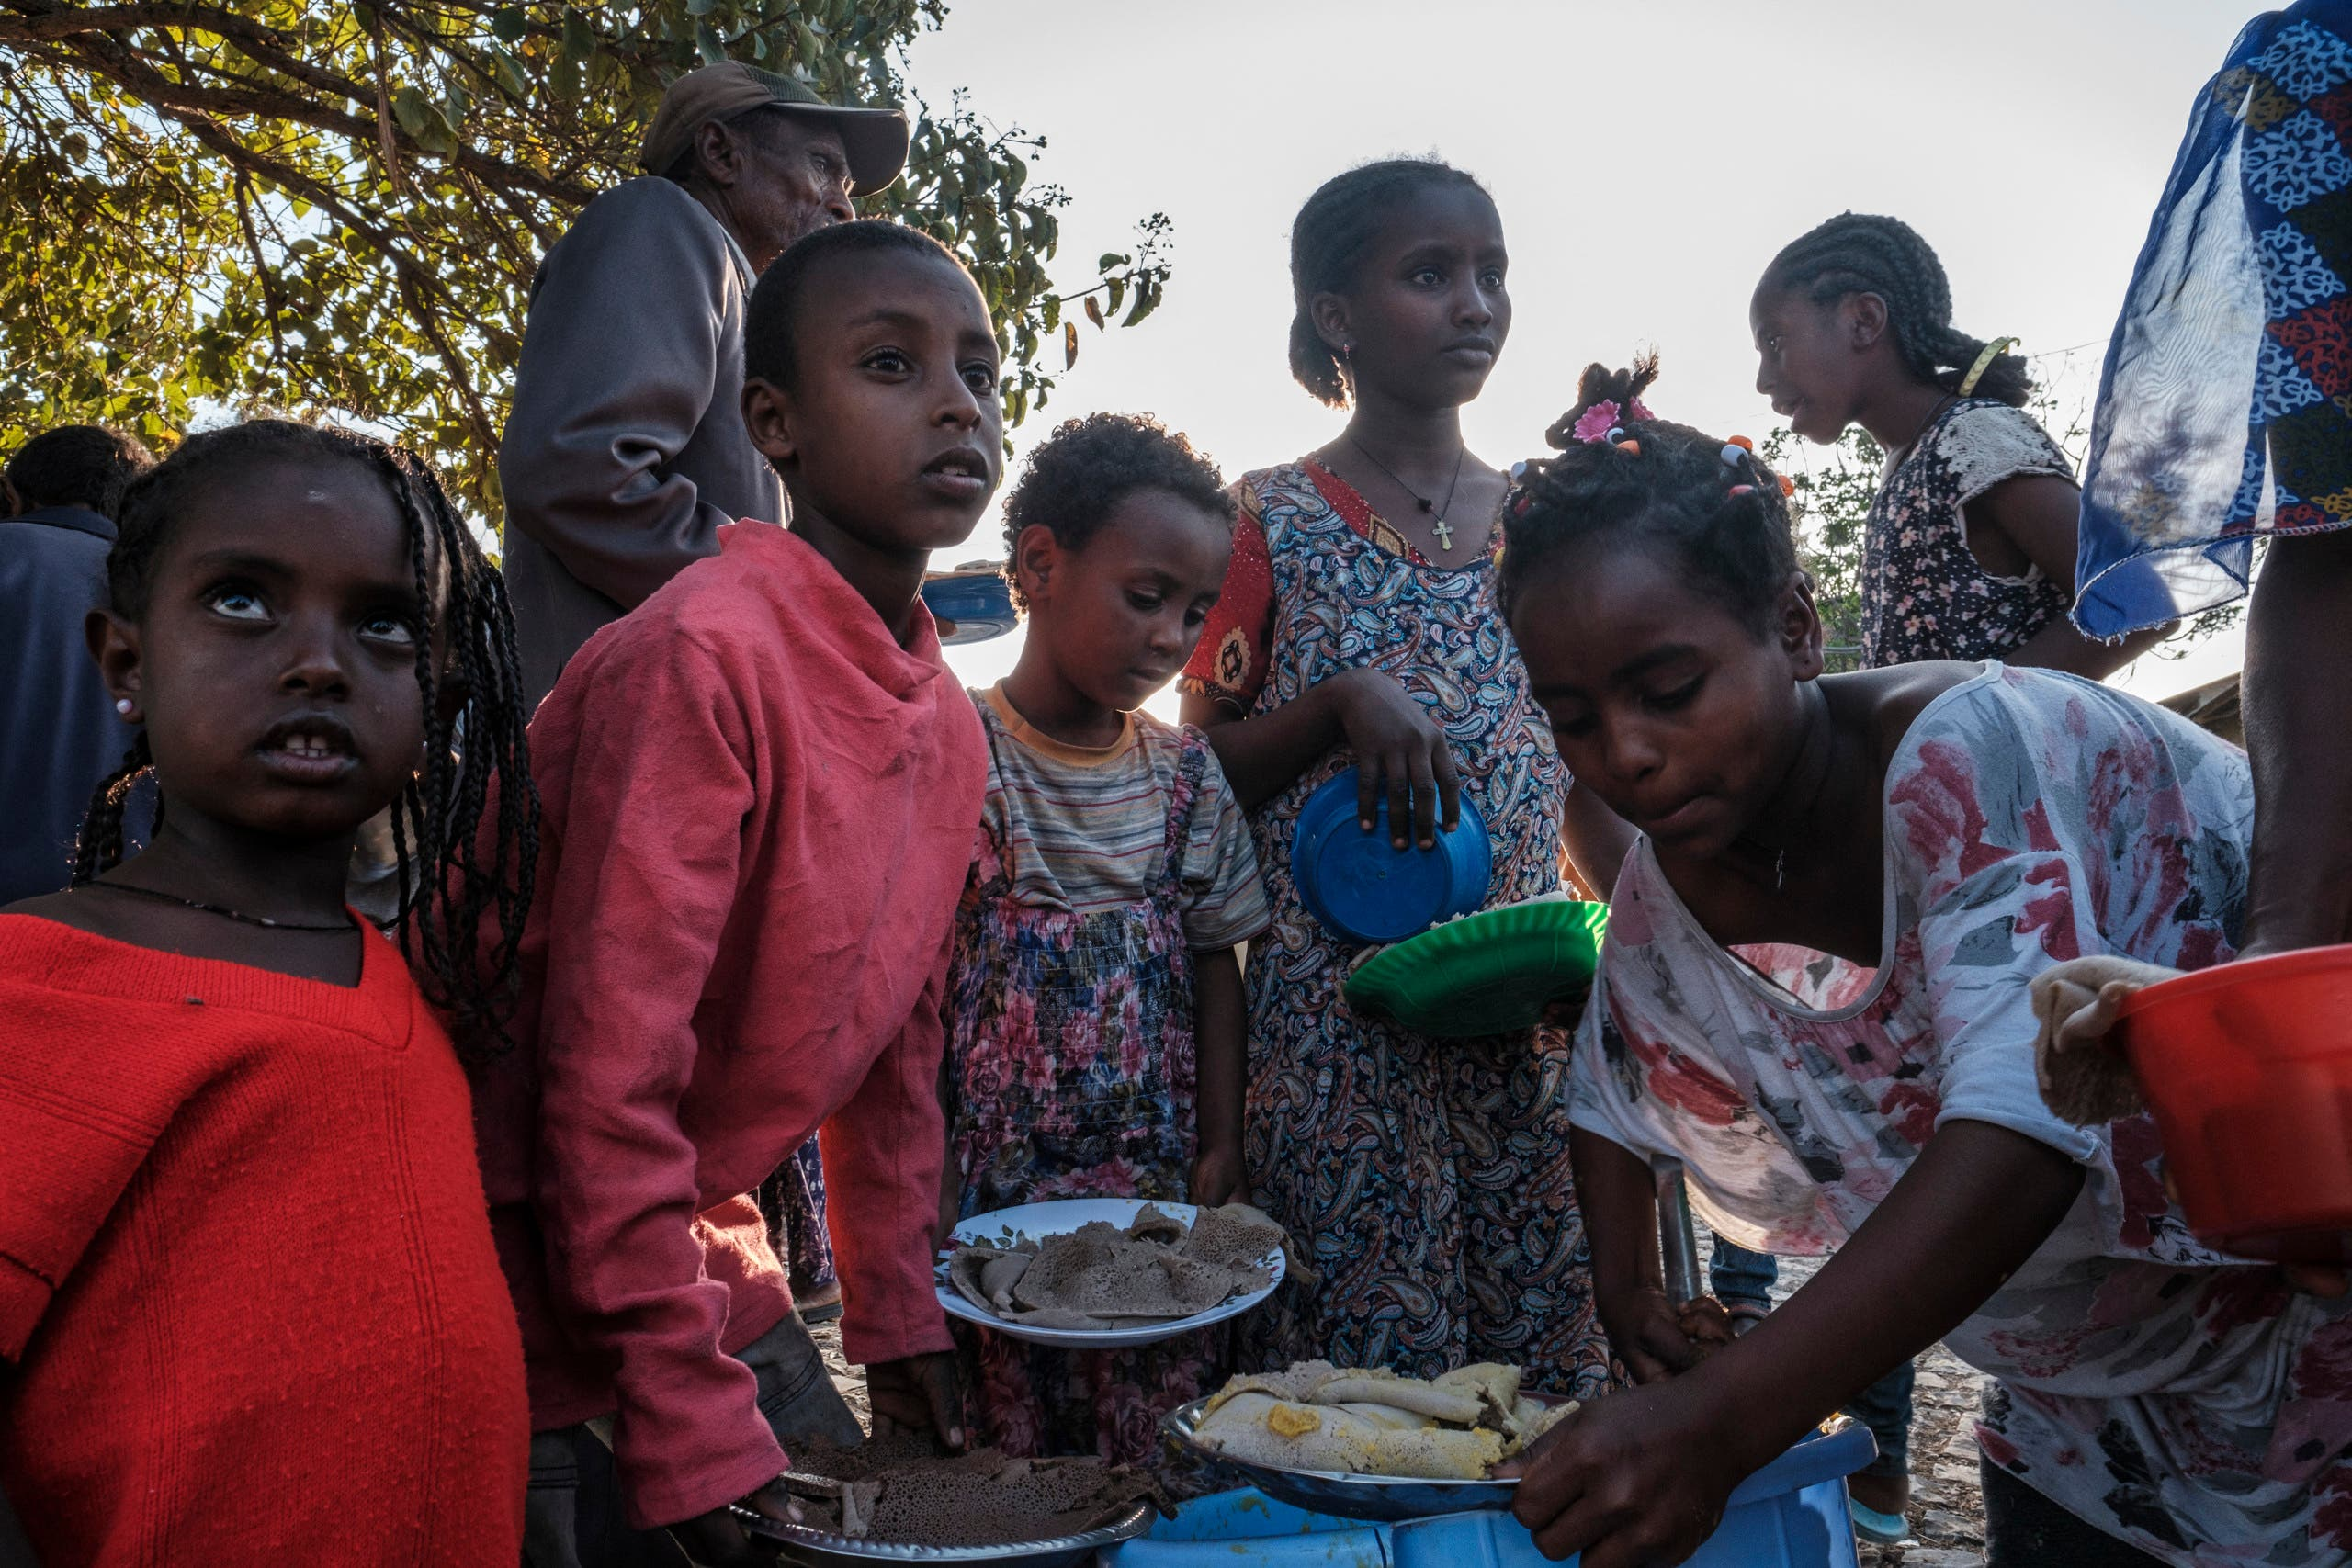 A displaced child from Western Tigray waits at meal time to receive a plate of food outside a classroom in the school where they are sheltering in Tigray's capital Mekele on February 24, 2021. (File photo: AFP)